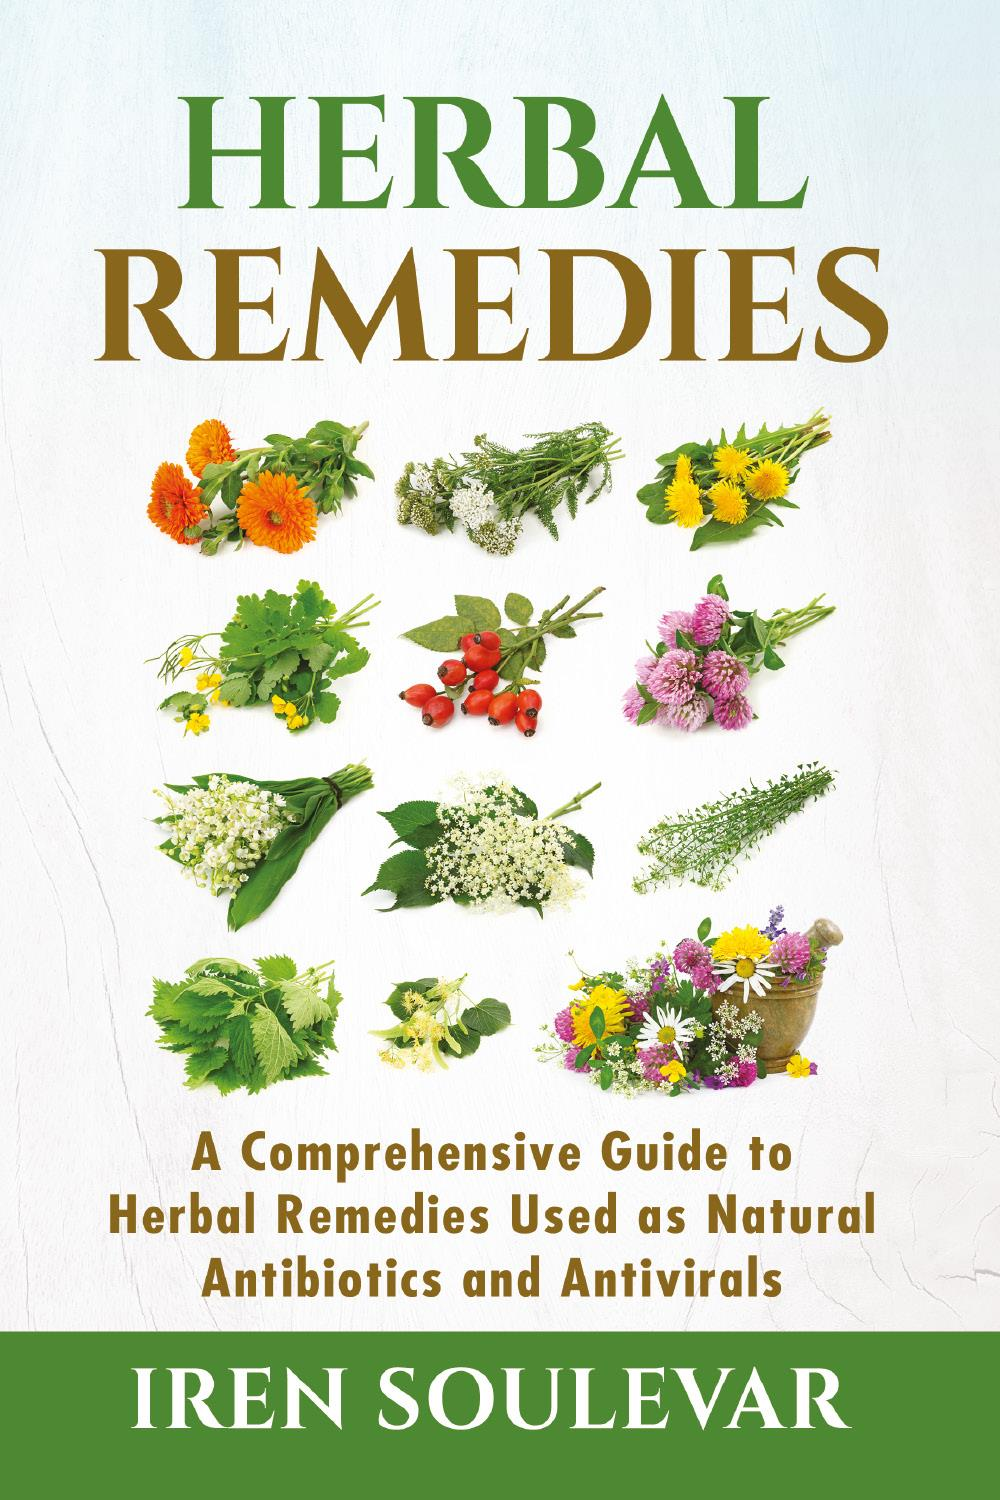 Herbal Remedies. A Comprehensive Guide to Herbal Remedies Used as Natural Antibiotics and Antivirals